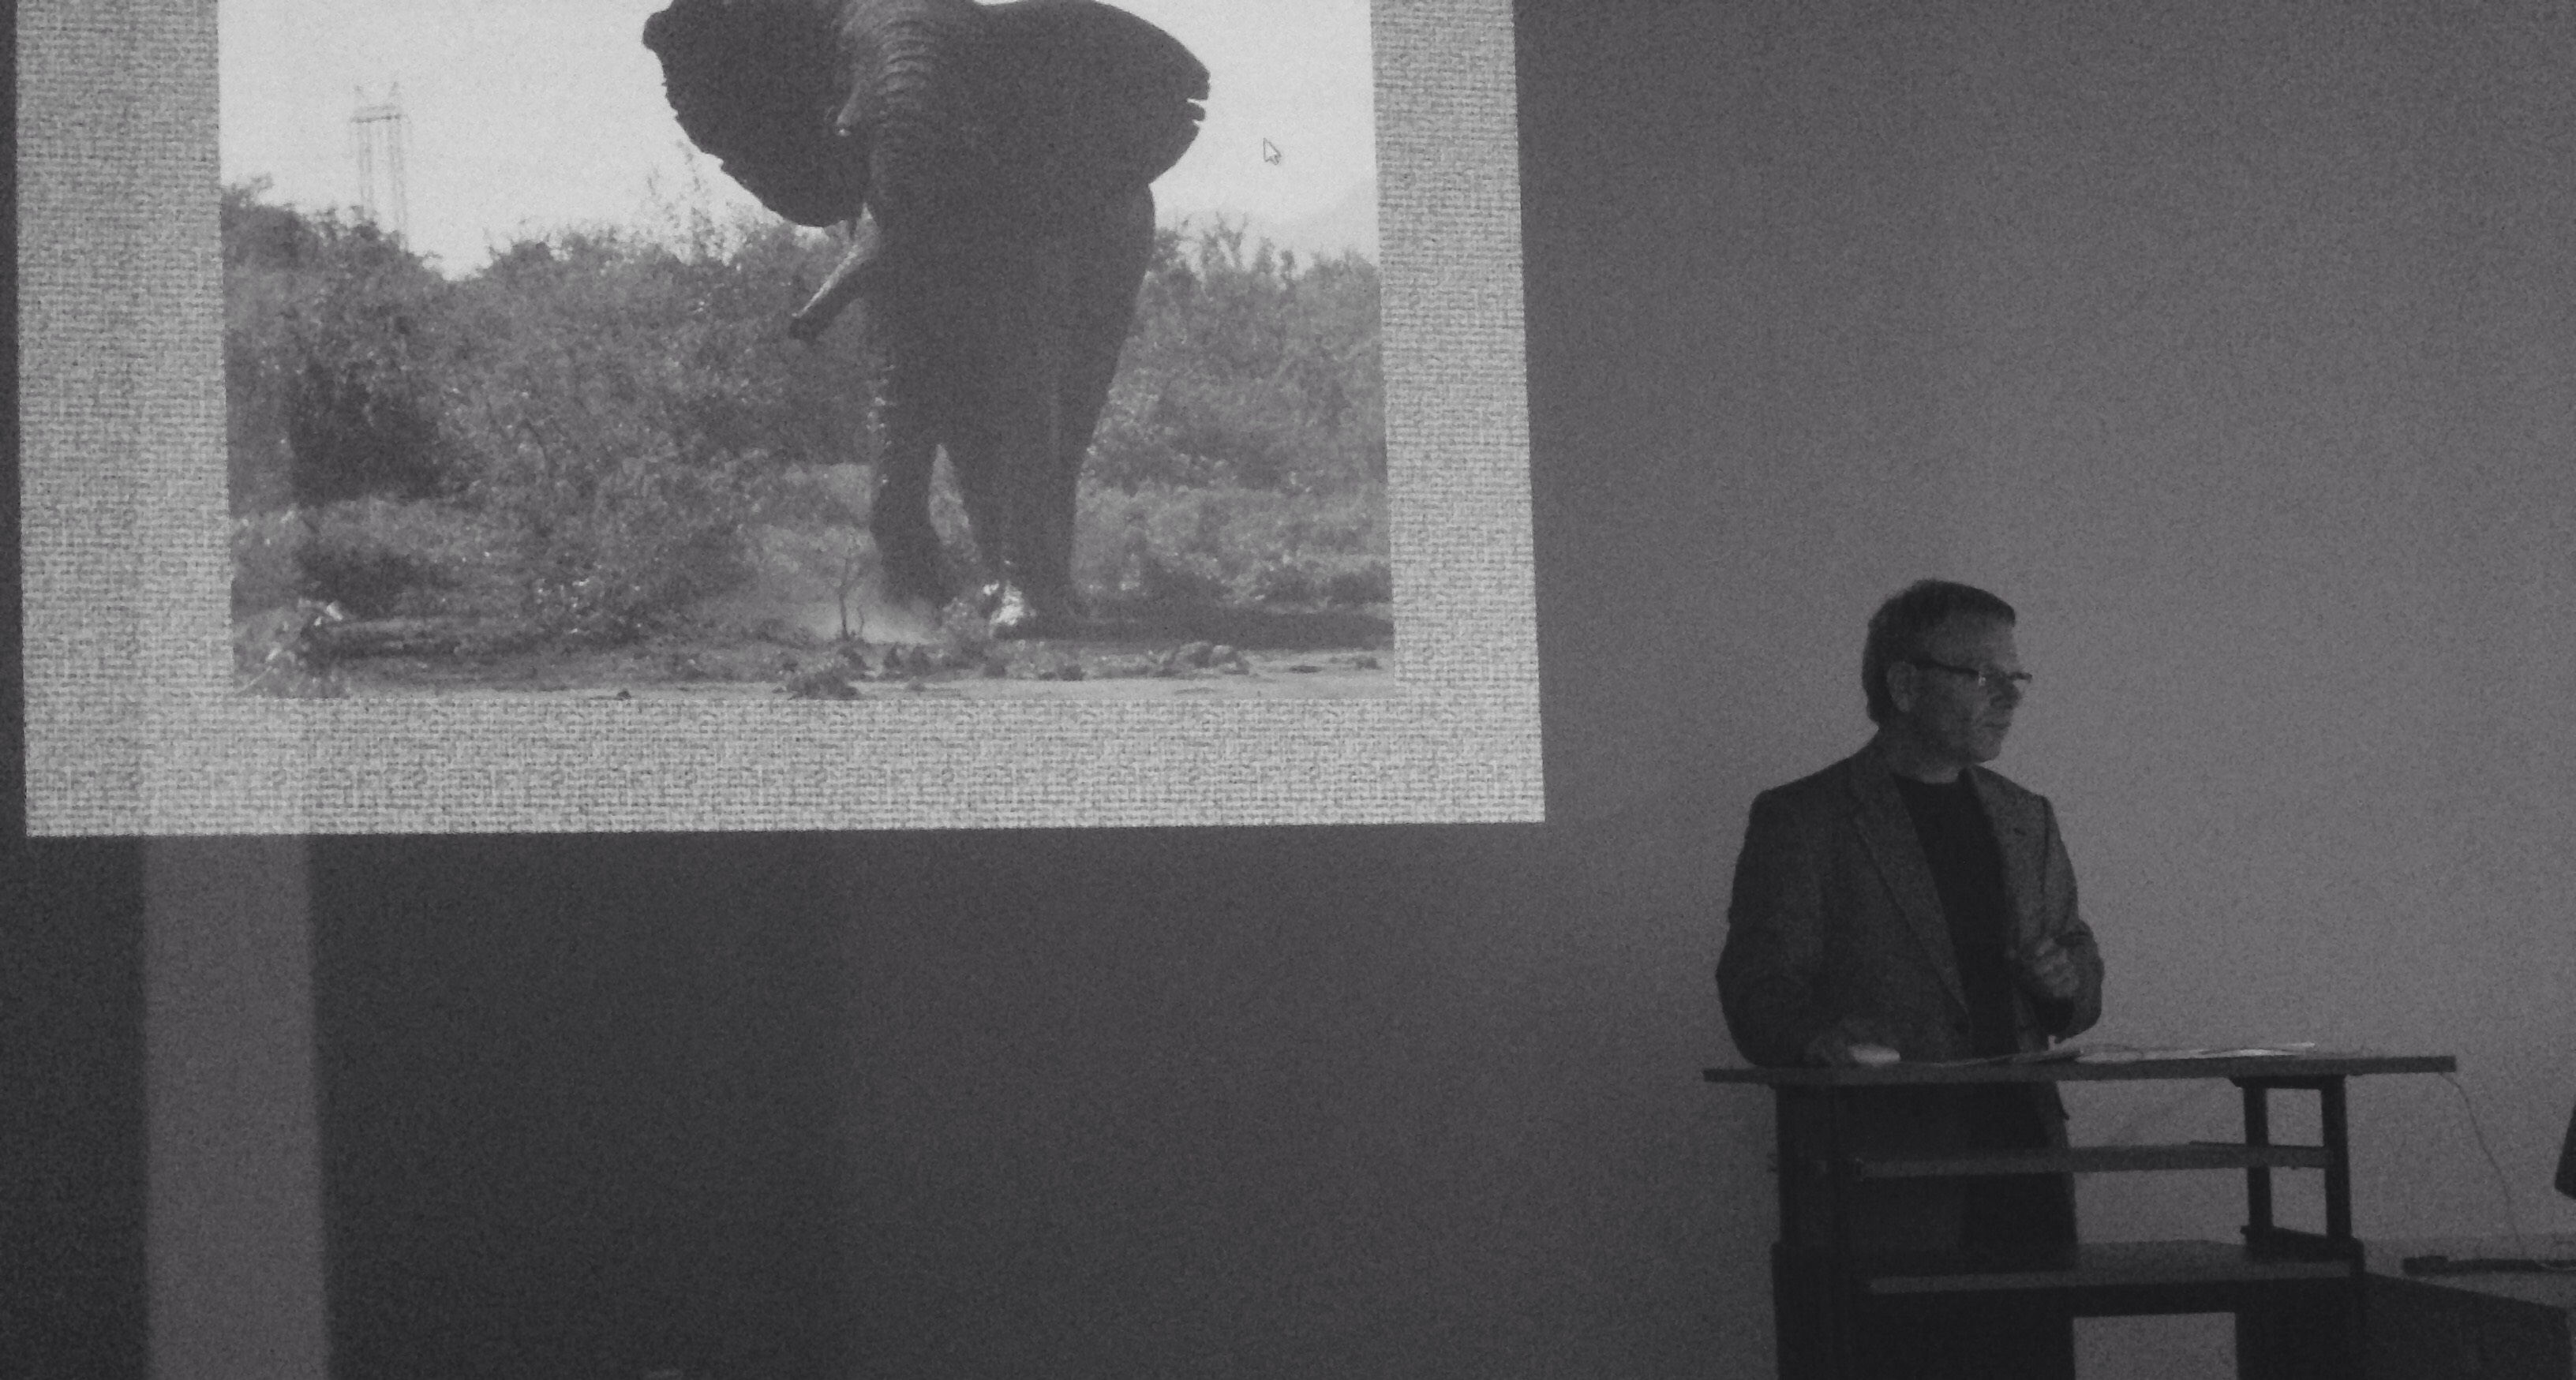 Dr. Tom Serfass discussing African Elephants, taken by Amelia Manasterli.